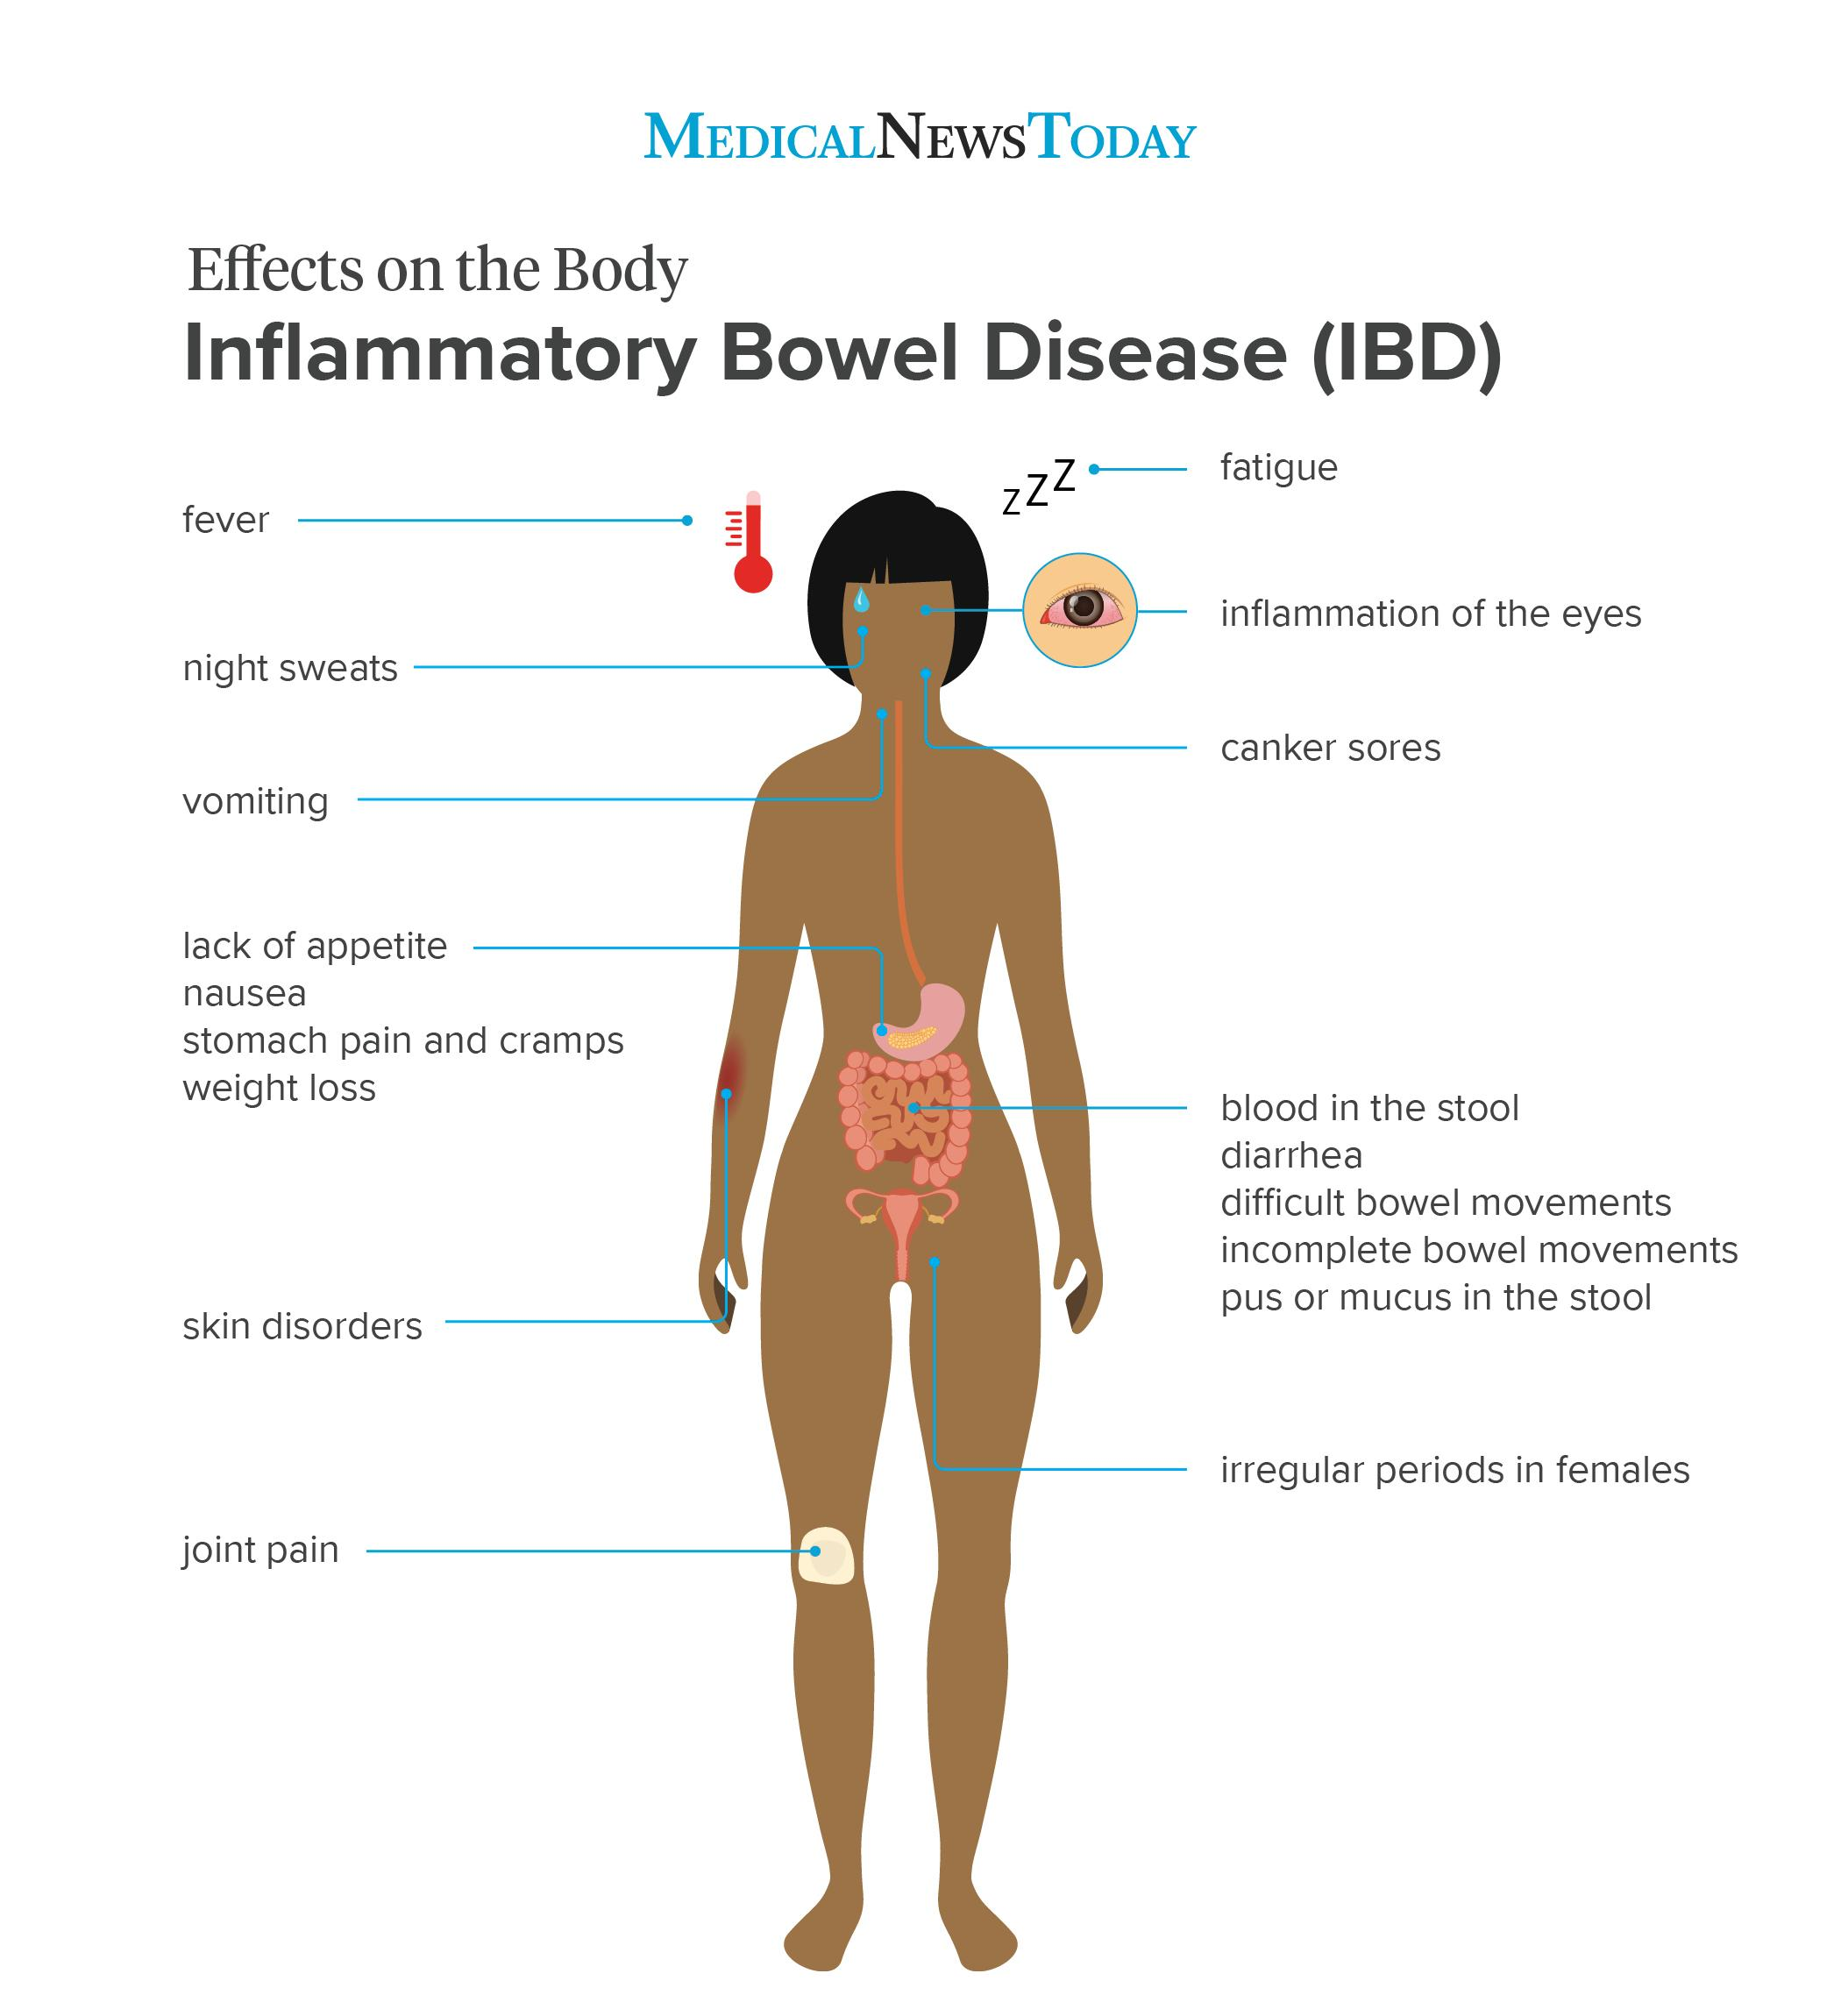 an infographics showing the effects on the body of IBD